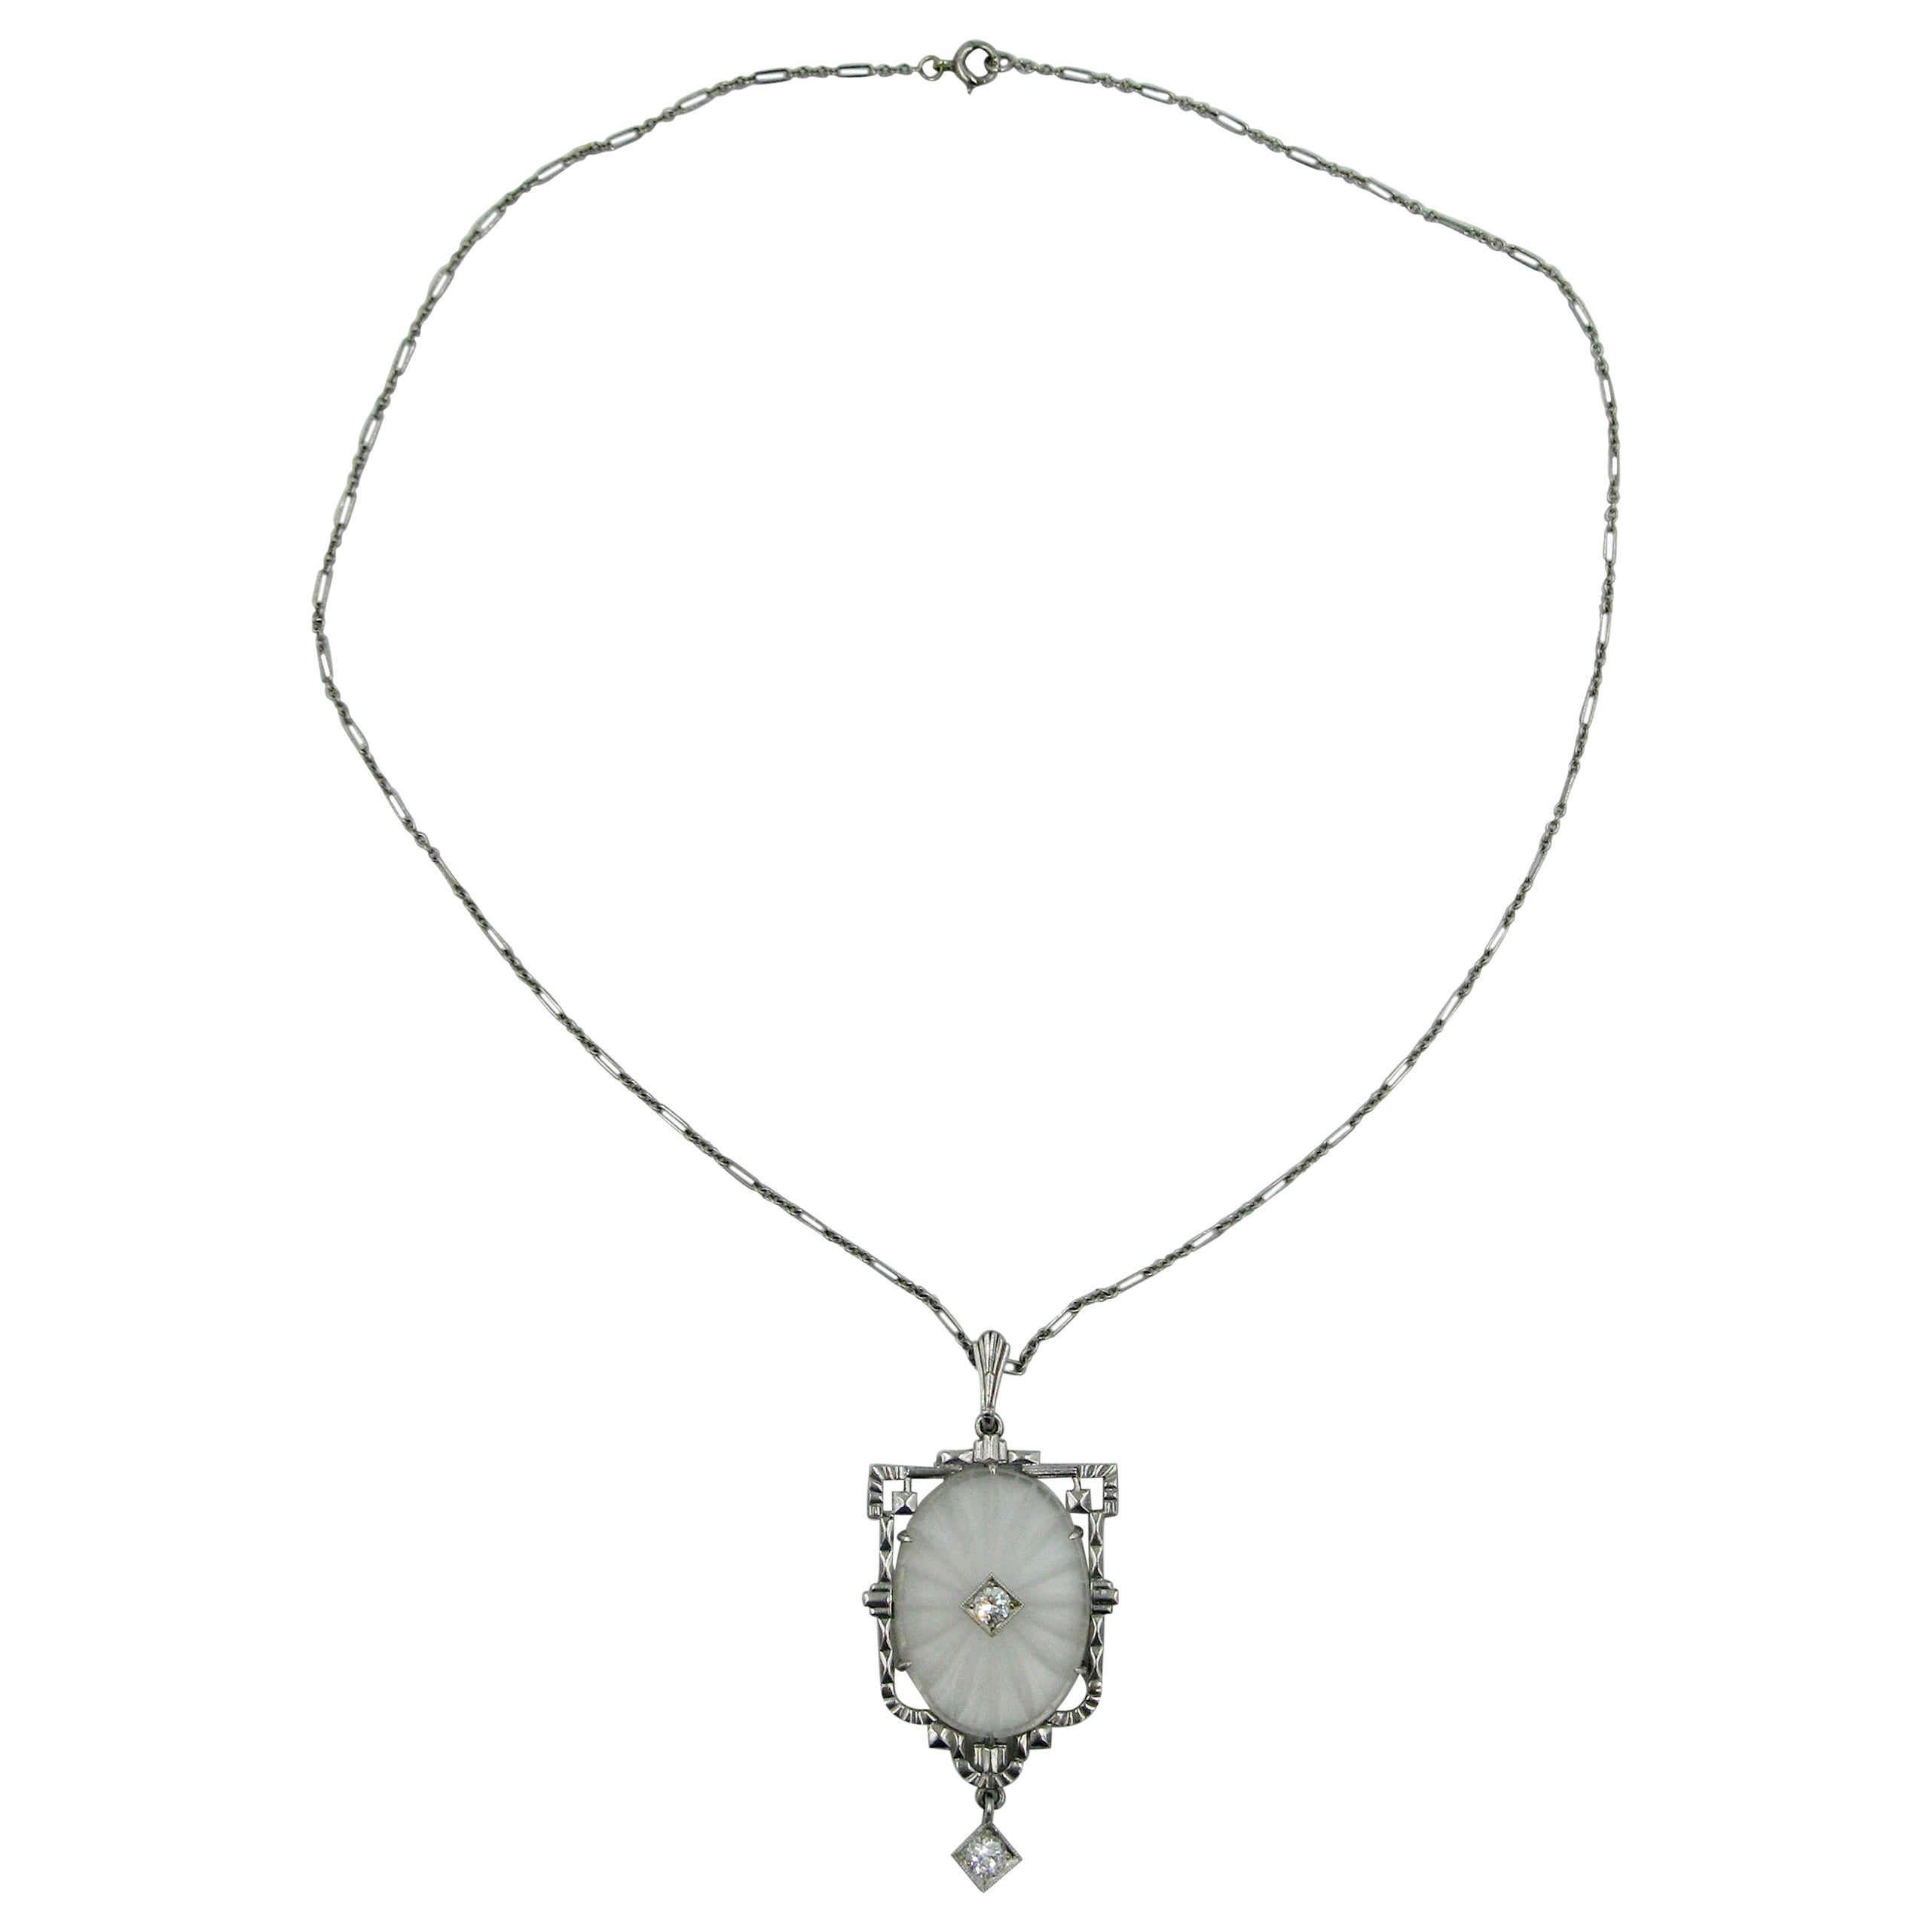 Art Deco Old European Cut Diamond Crystal Pendant Necklace 14 Karat White Gold